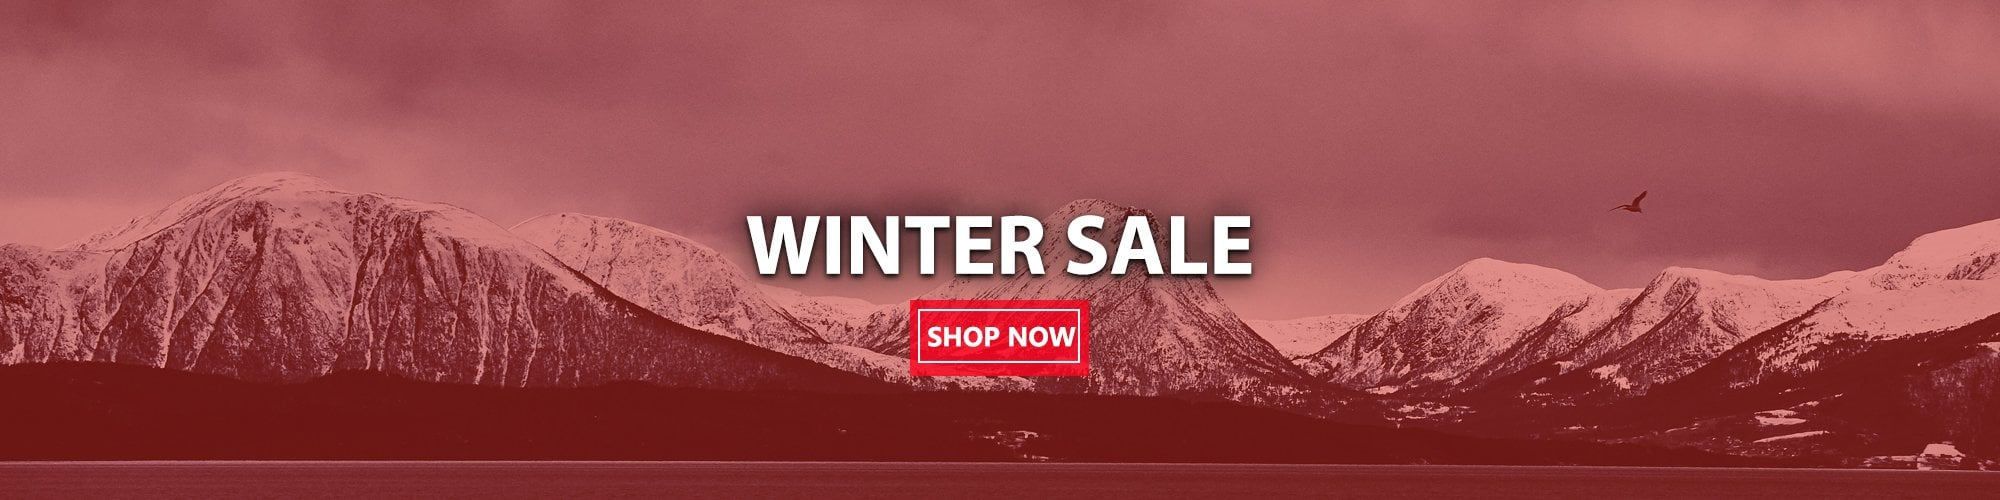 Winter Sale 2019